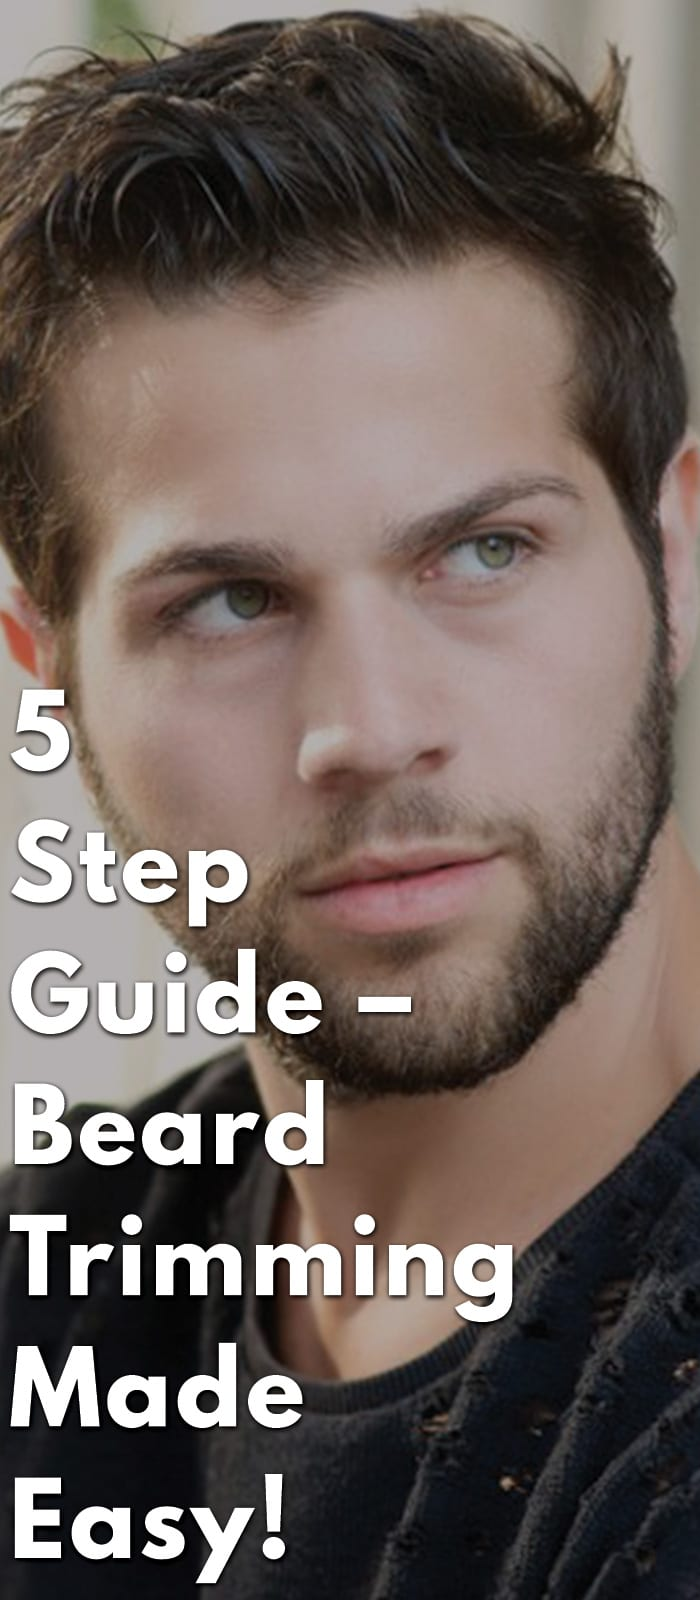 5-Step-Guide-–-Beard-Trimming-Made-Easy!.